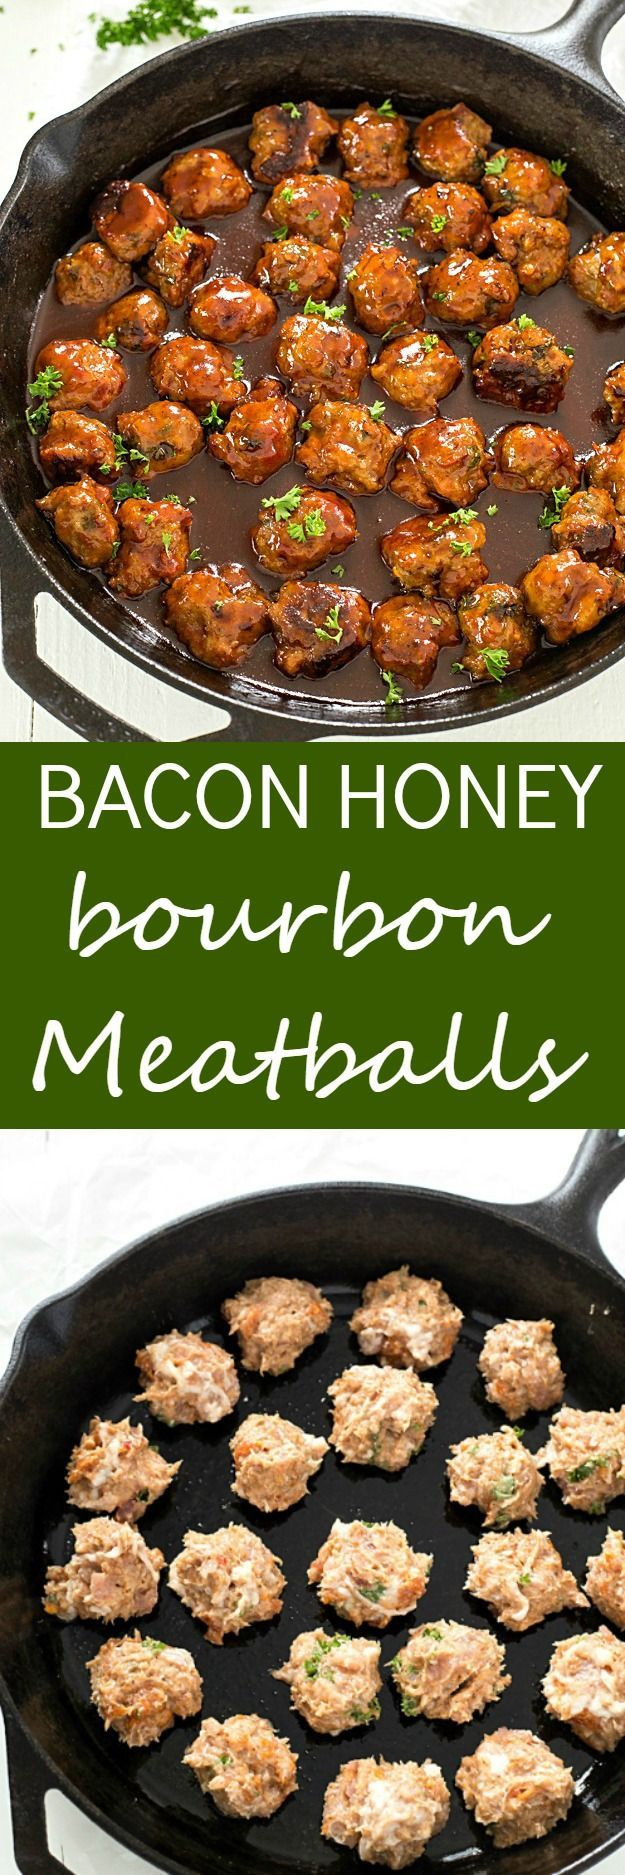 Bacon Honey Bourbon Chicken Meatballs - These meatballs are so easy and bake to perfection, and then simmer in an out-of-this-world honey bourbon barbecue sauce! P